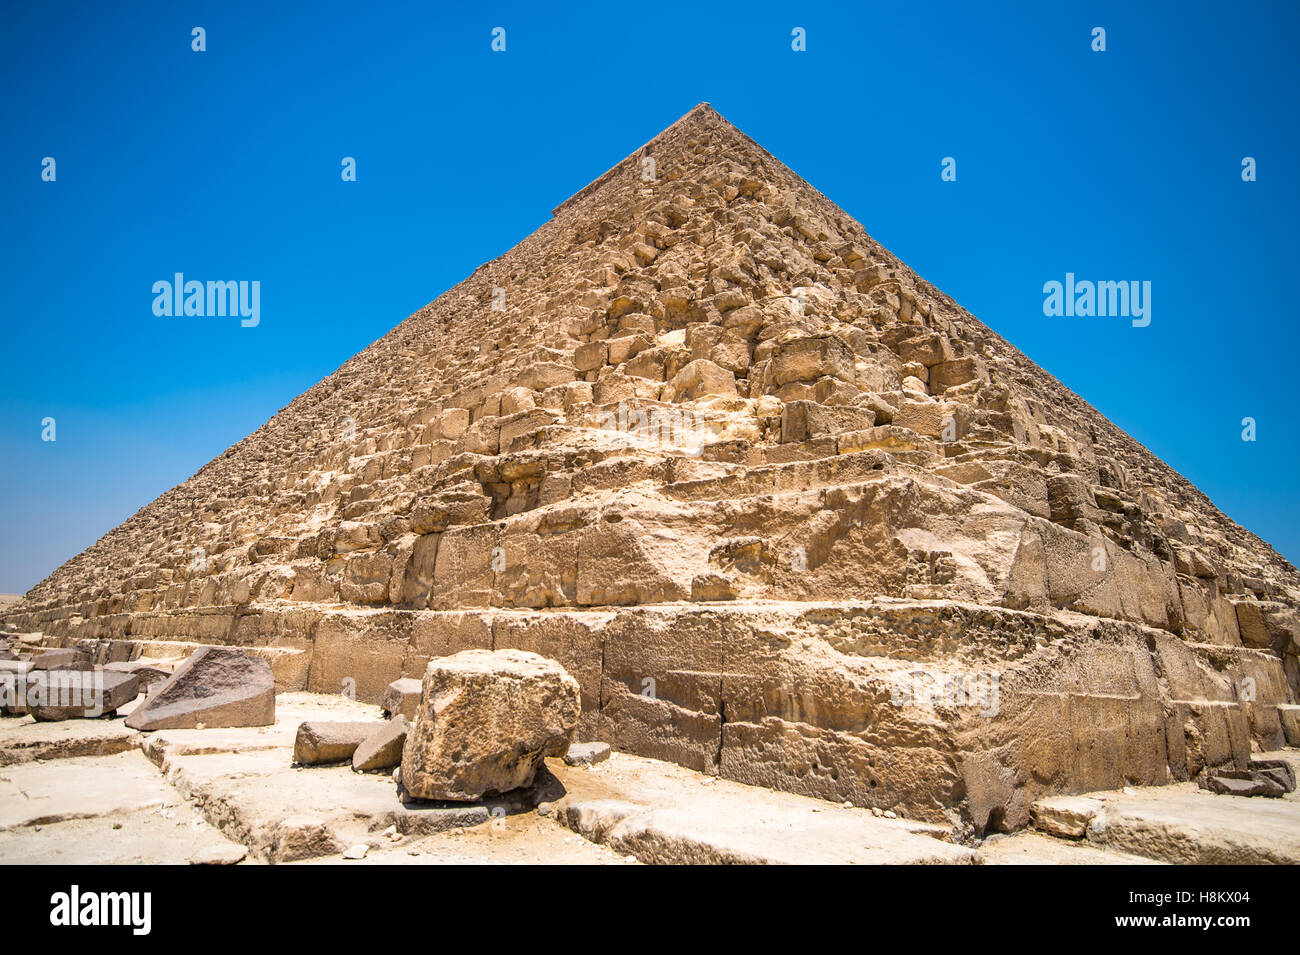 Cairo, Egypt. Close up worm's eye view of the casing stones (limestone) that make up The Great Pyramids of Giza. - Stock Image